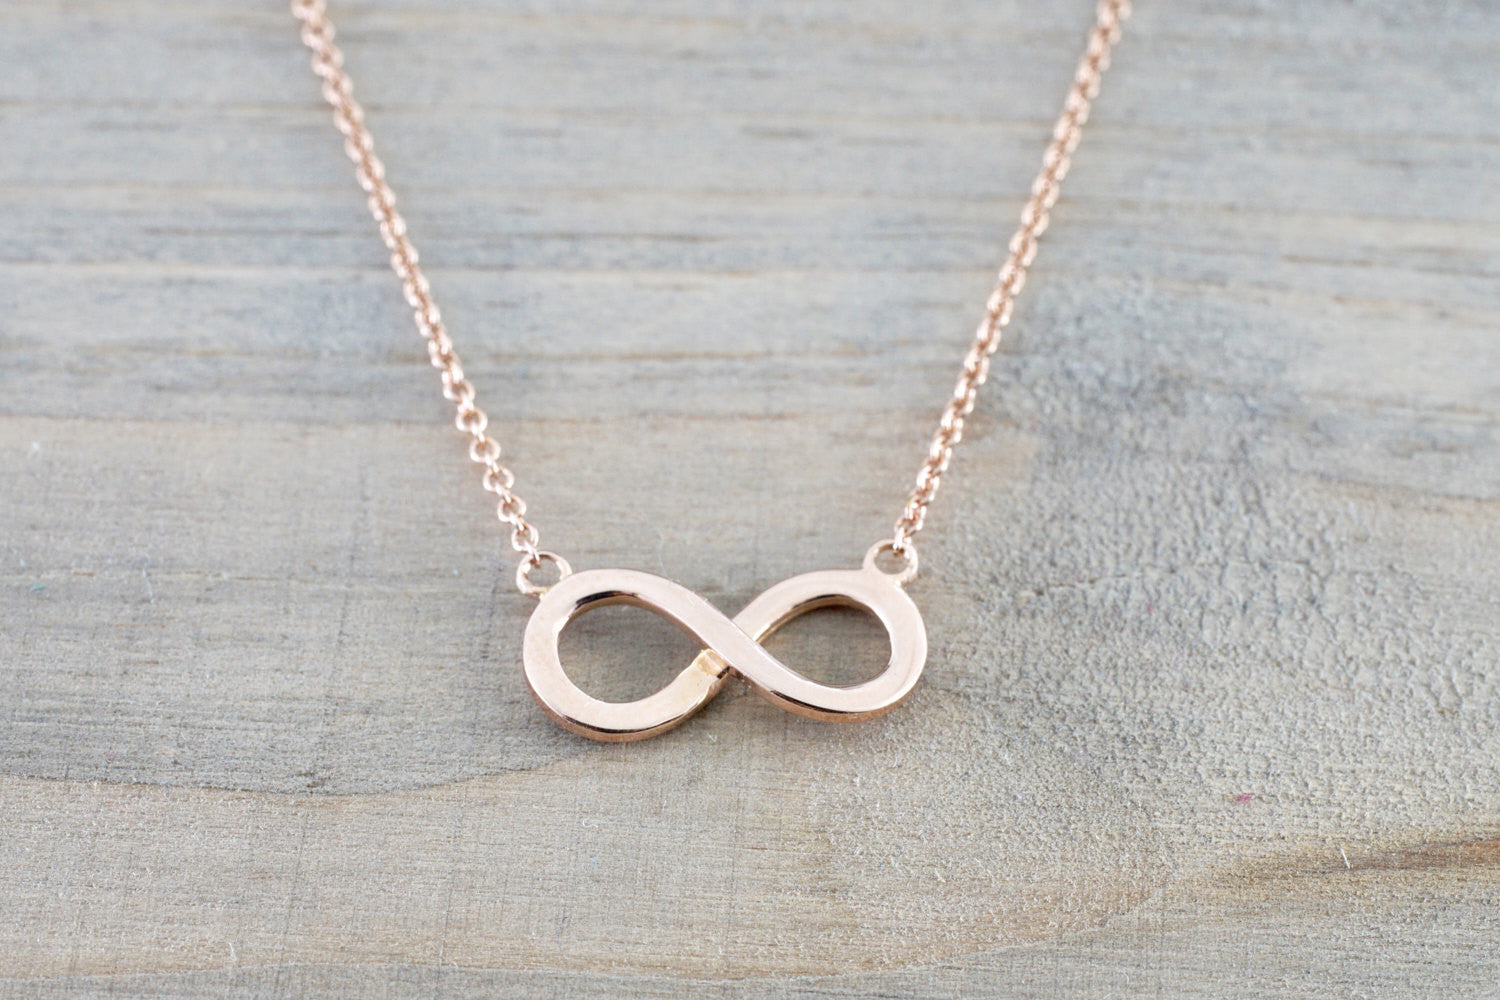 14k Rose Gold Infinity Open Pendant Necklace - Brilliant Facets